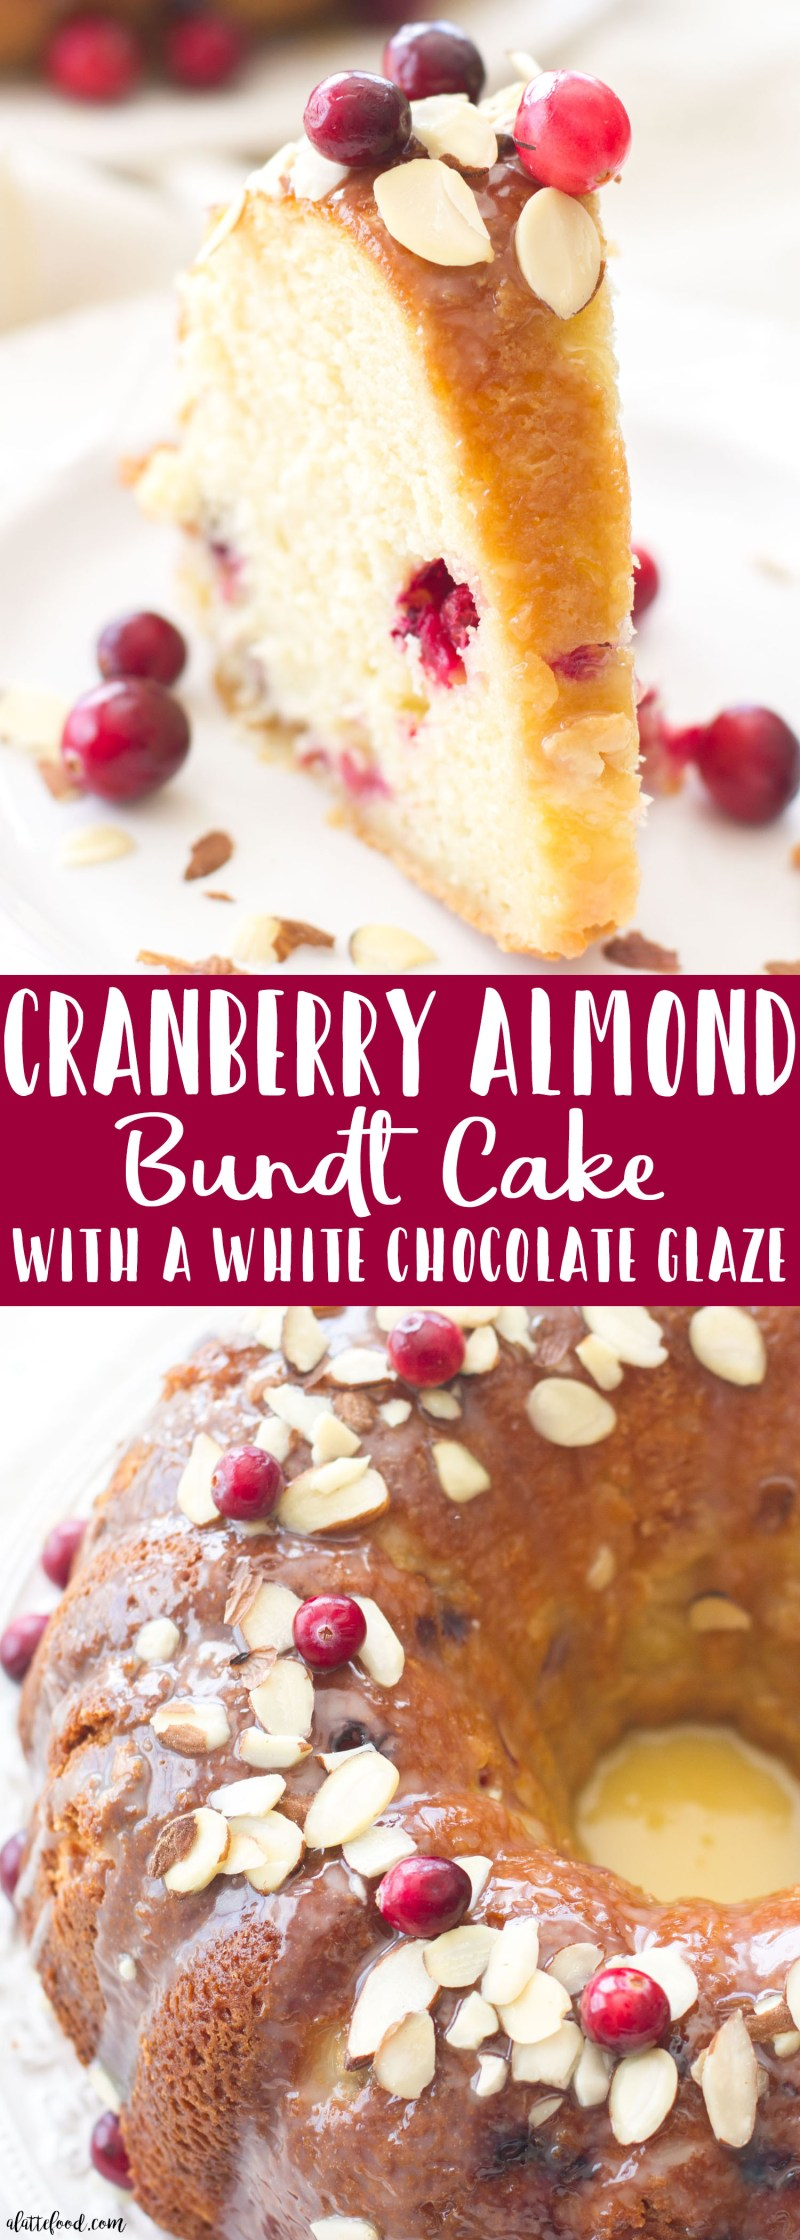 This easy cranberry almond bundt cake is made with fresh cranberries and topped with a white chocolate glaze! The sweet almond flavor pairs perfectly with the tart cranberry flavor. A fantastic Christmas dessert or Thanksgiving recipe!